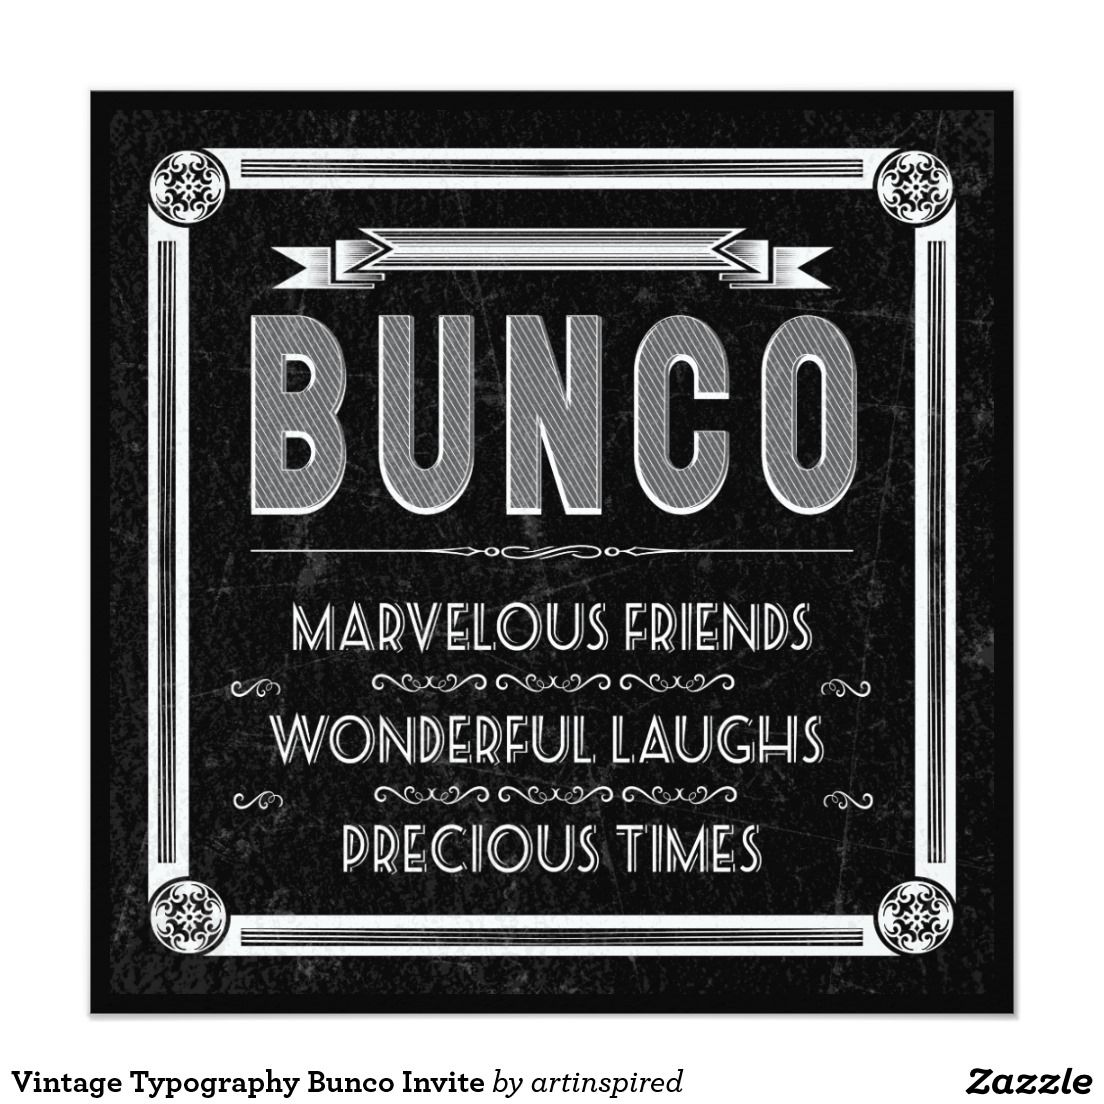 Vintage Typography Bunco Invite Bunco party Vintage typography